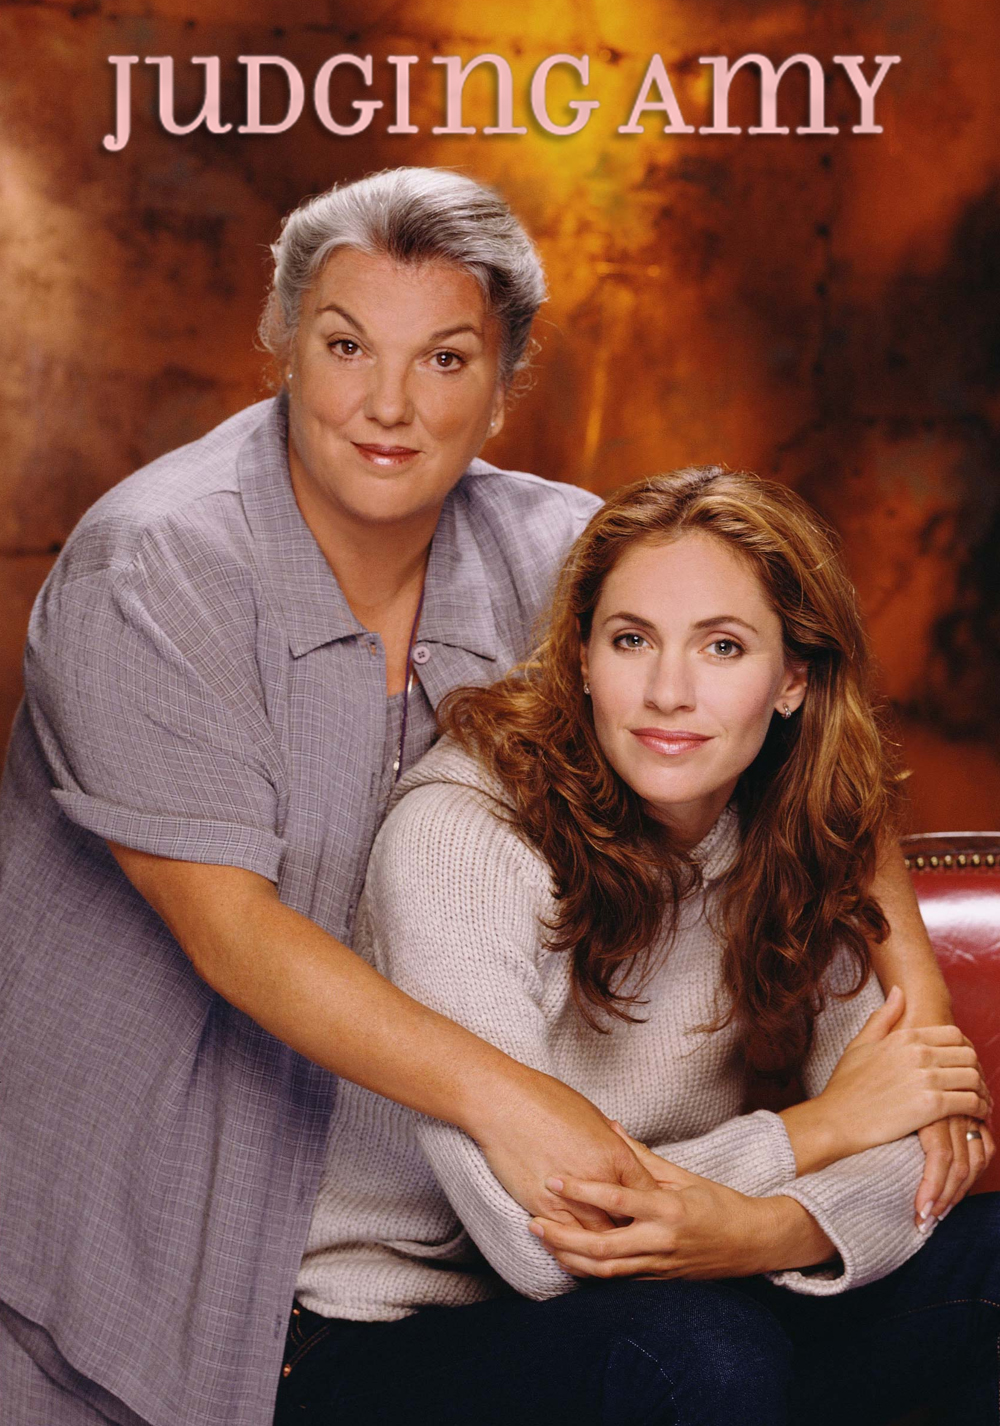 Judging Amy: Season 3